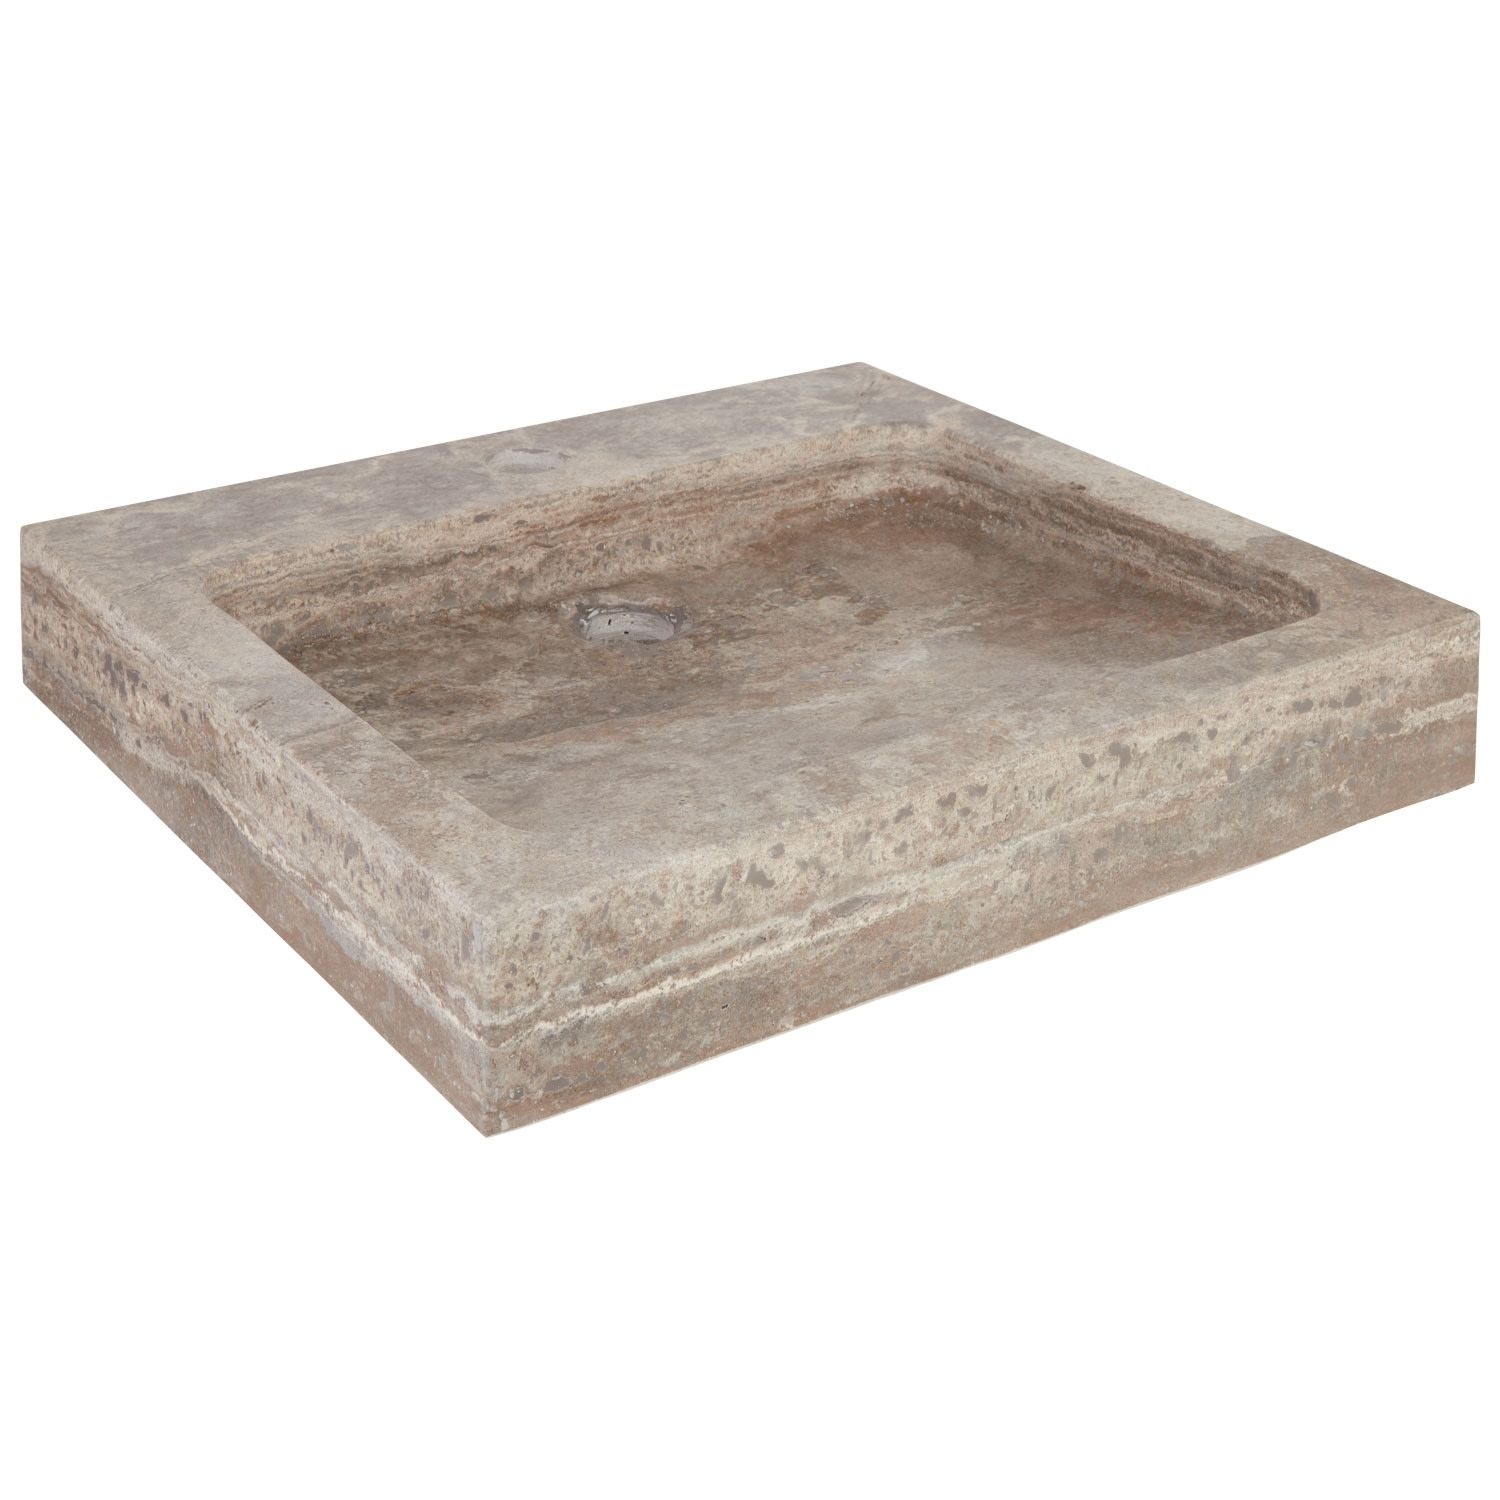 "thumbnail 19 - Signature Hardware 231915 20"" Square Polished Travertine Vessel"